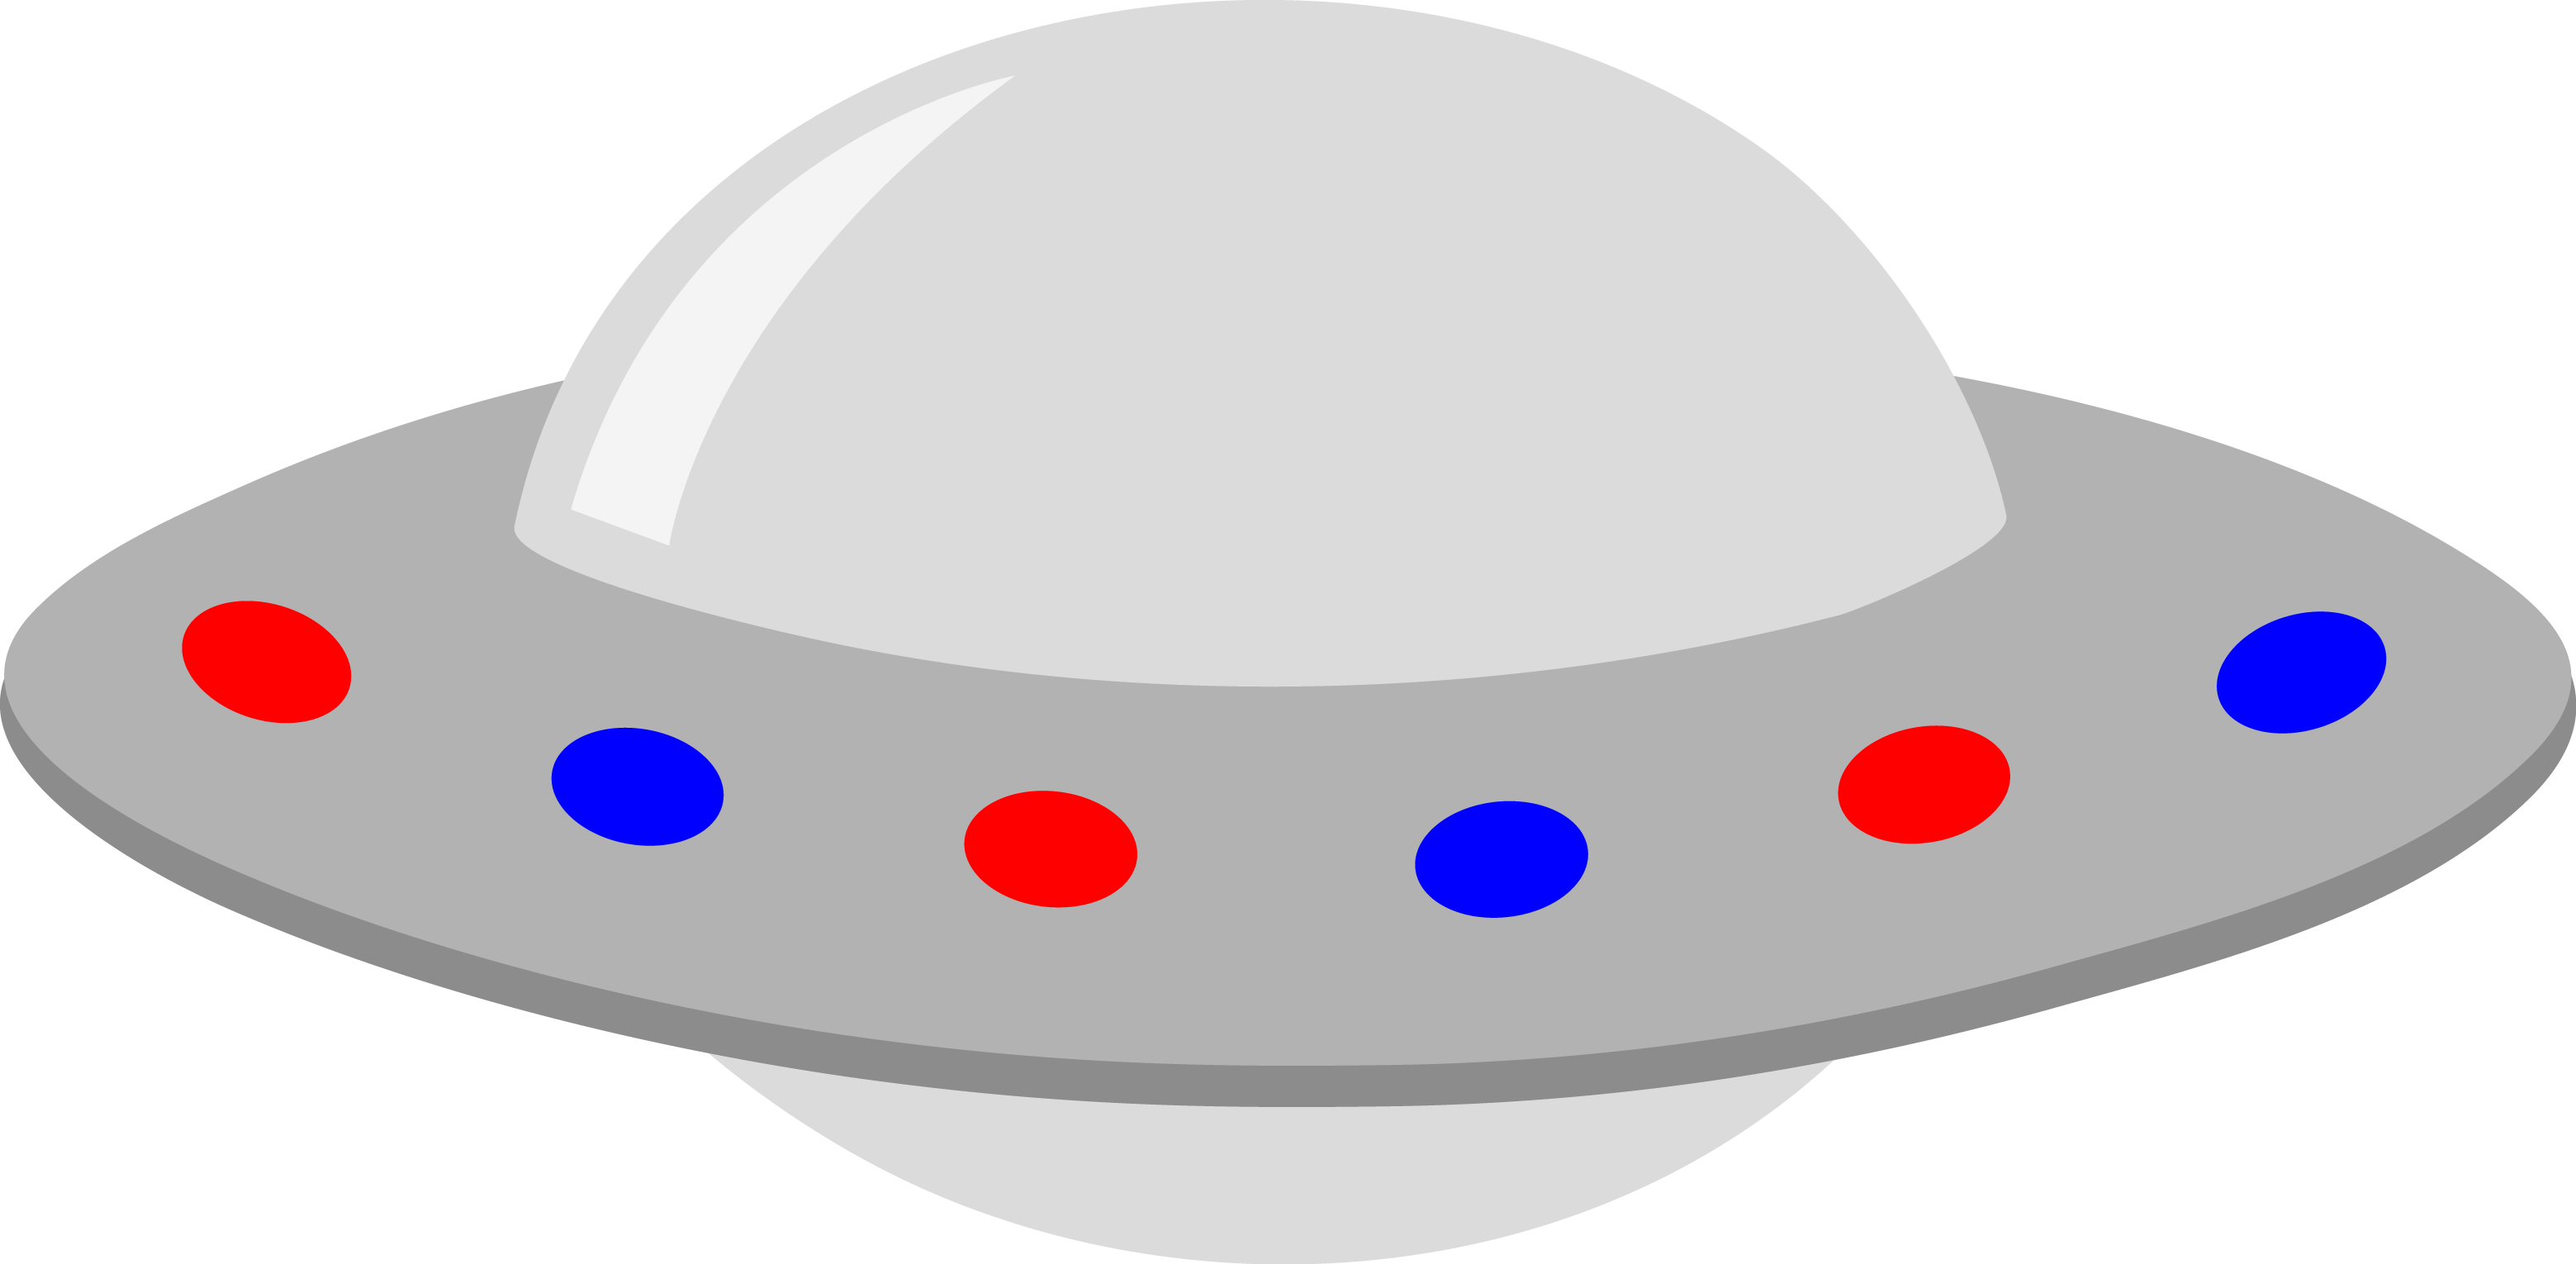 Cartoon ufo png. Collection of aliens